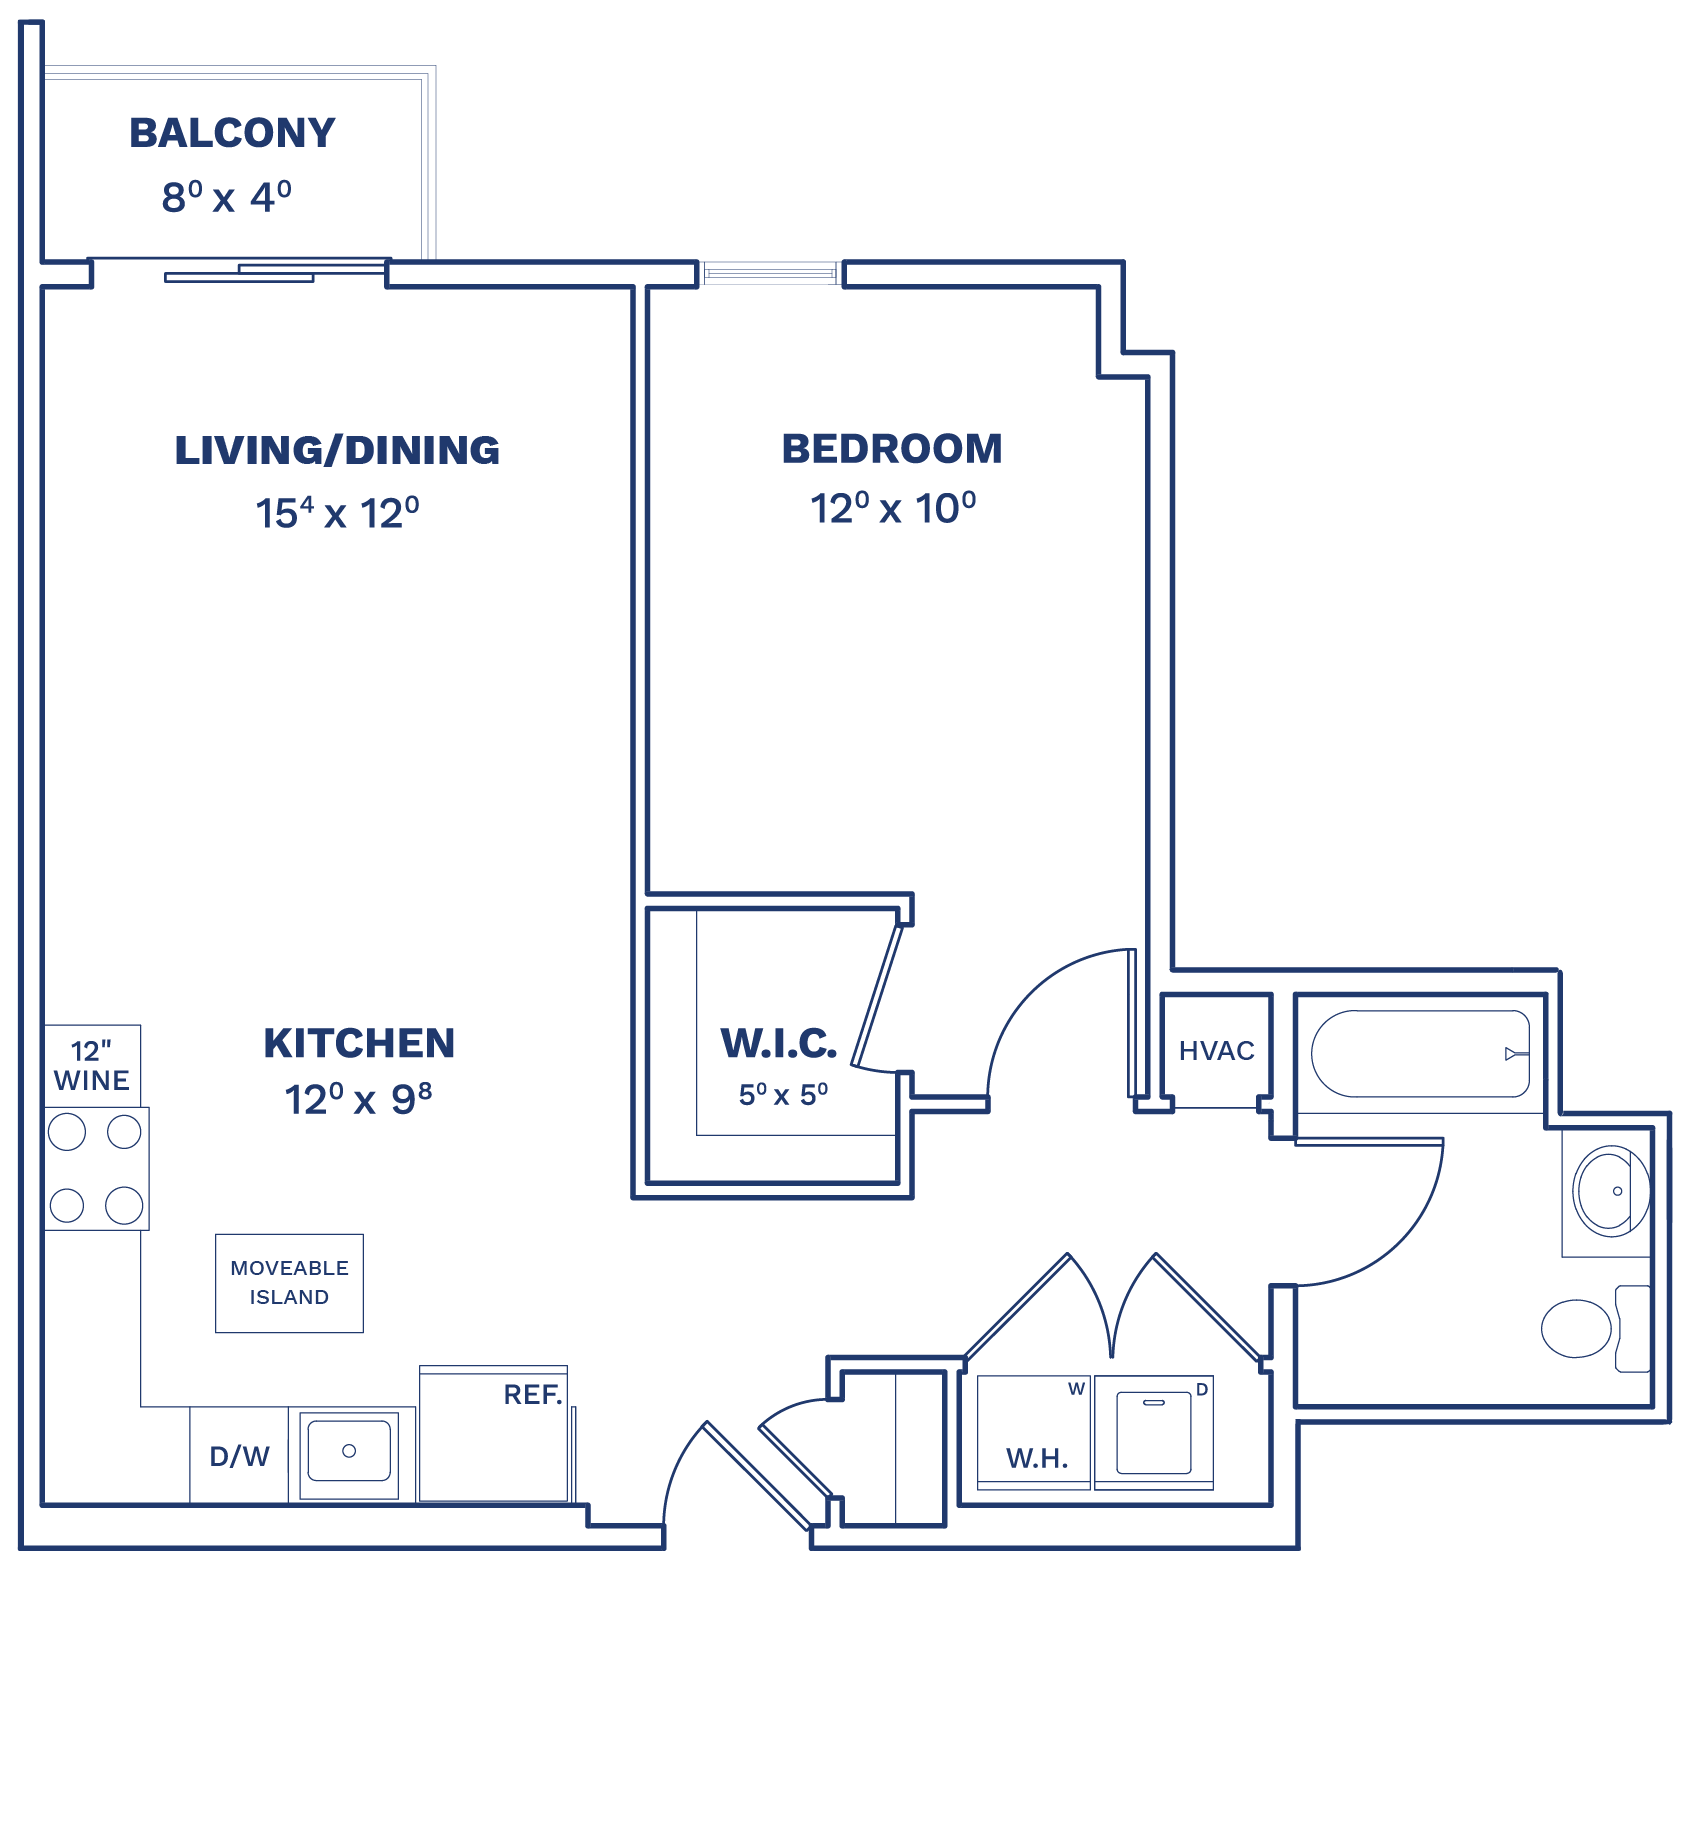 Floorplan of Unit A1